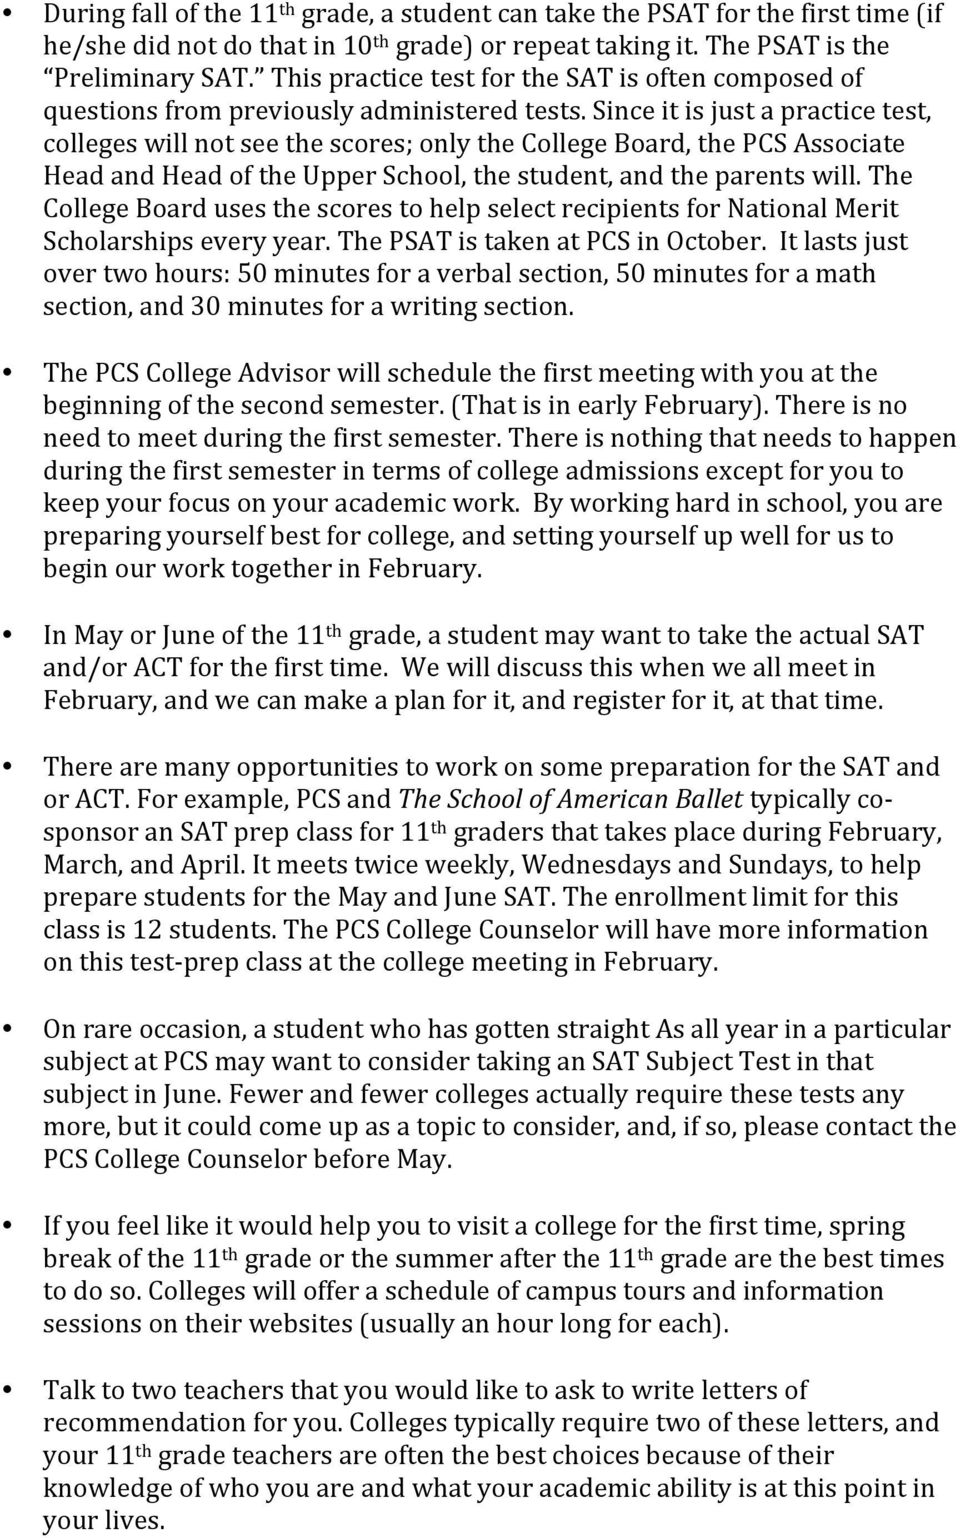 Since it is just a practice test, colleges will not see the scores; only the College Board, the PCS Associate Head and Head of the Upper School, the student, and the parents will.